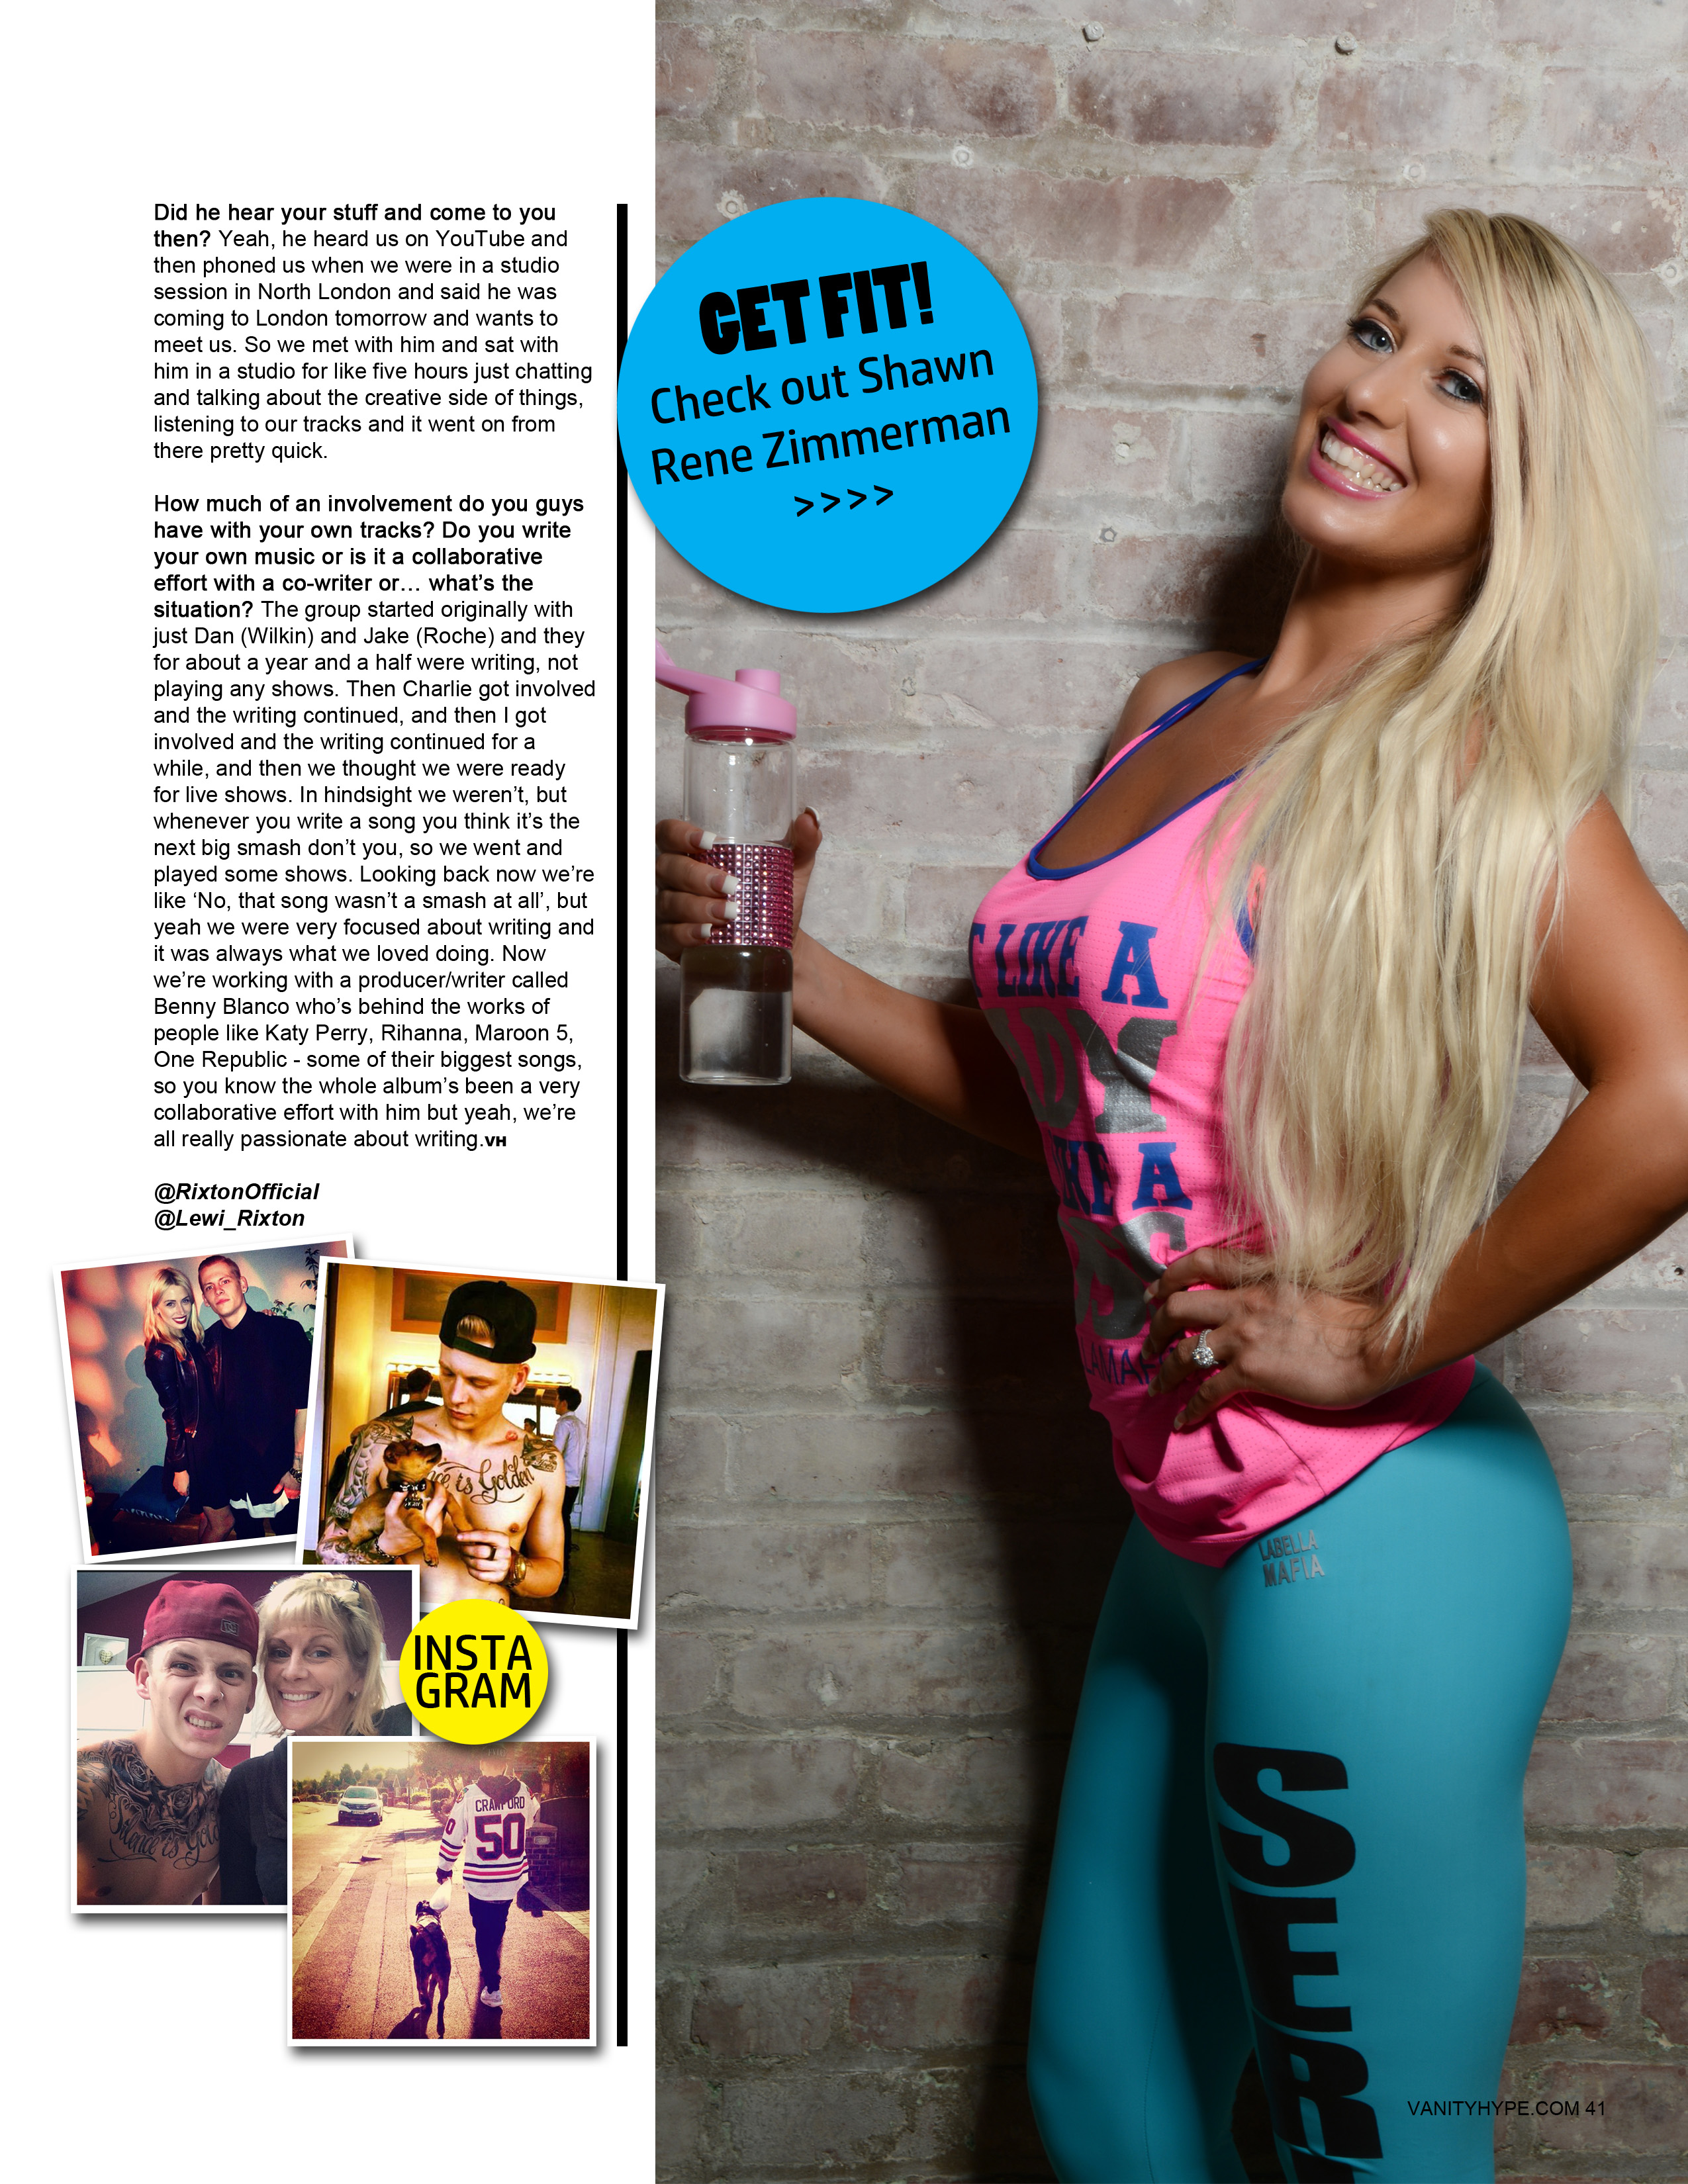 shawn rene zimmerman featured cover model in vanity hype london fashion